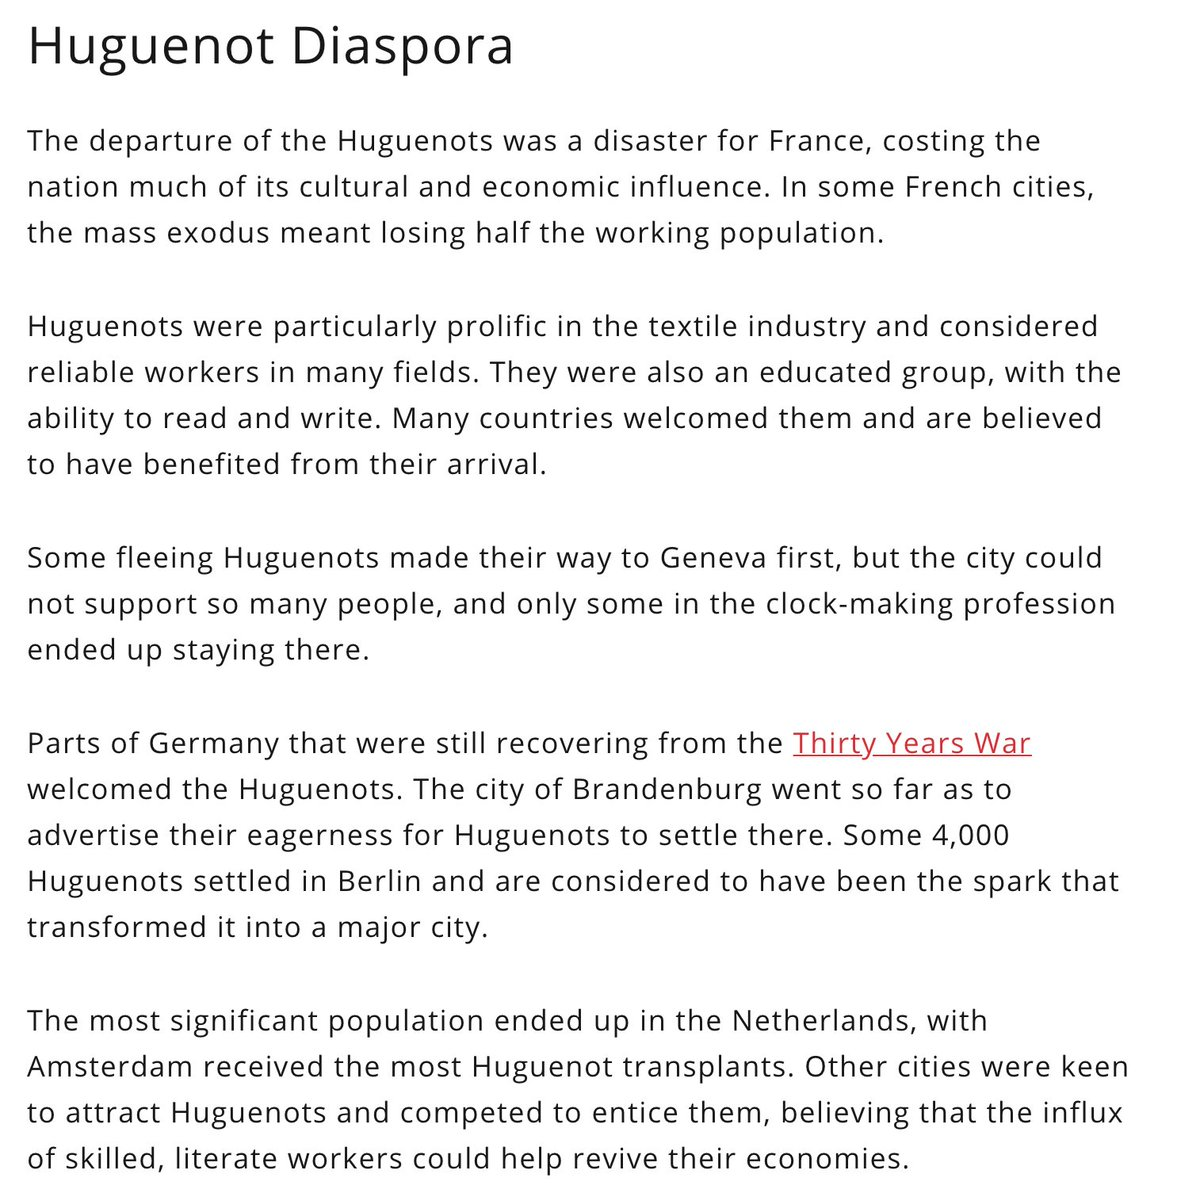 #HongKongers are today's Huguenots (wealthy & educated protestants who left France in the 17th century because of persecutions).  Countries who will welcome them will thrive thanks to an inflow of capital, culture and know-how, as the Dutch Republic and England thrived back then. pic.twitter.com/5TRXpersrC